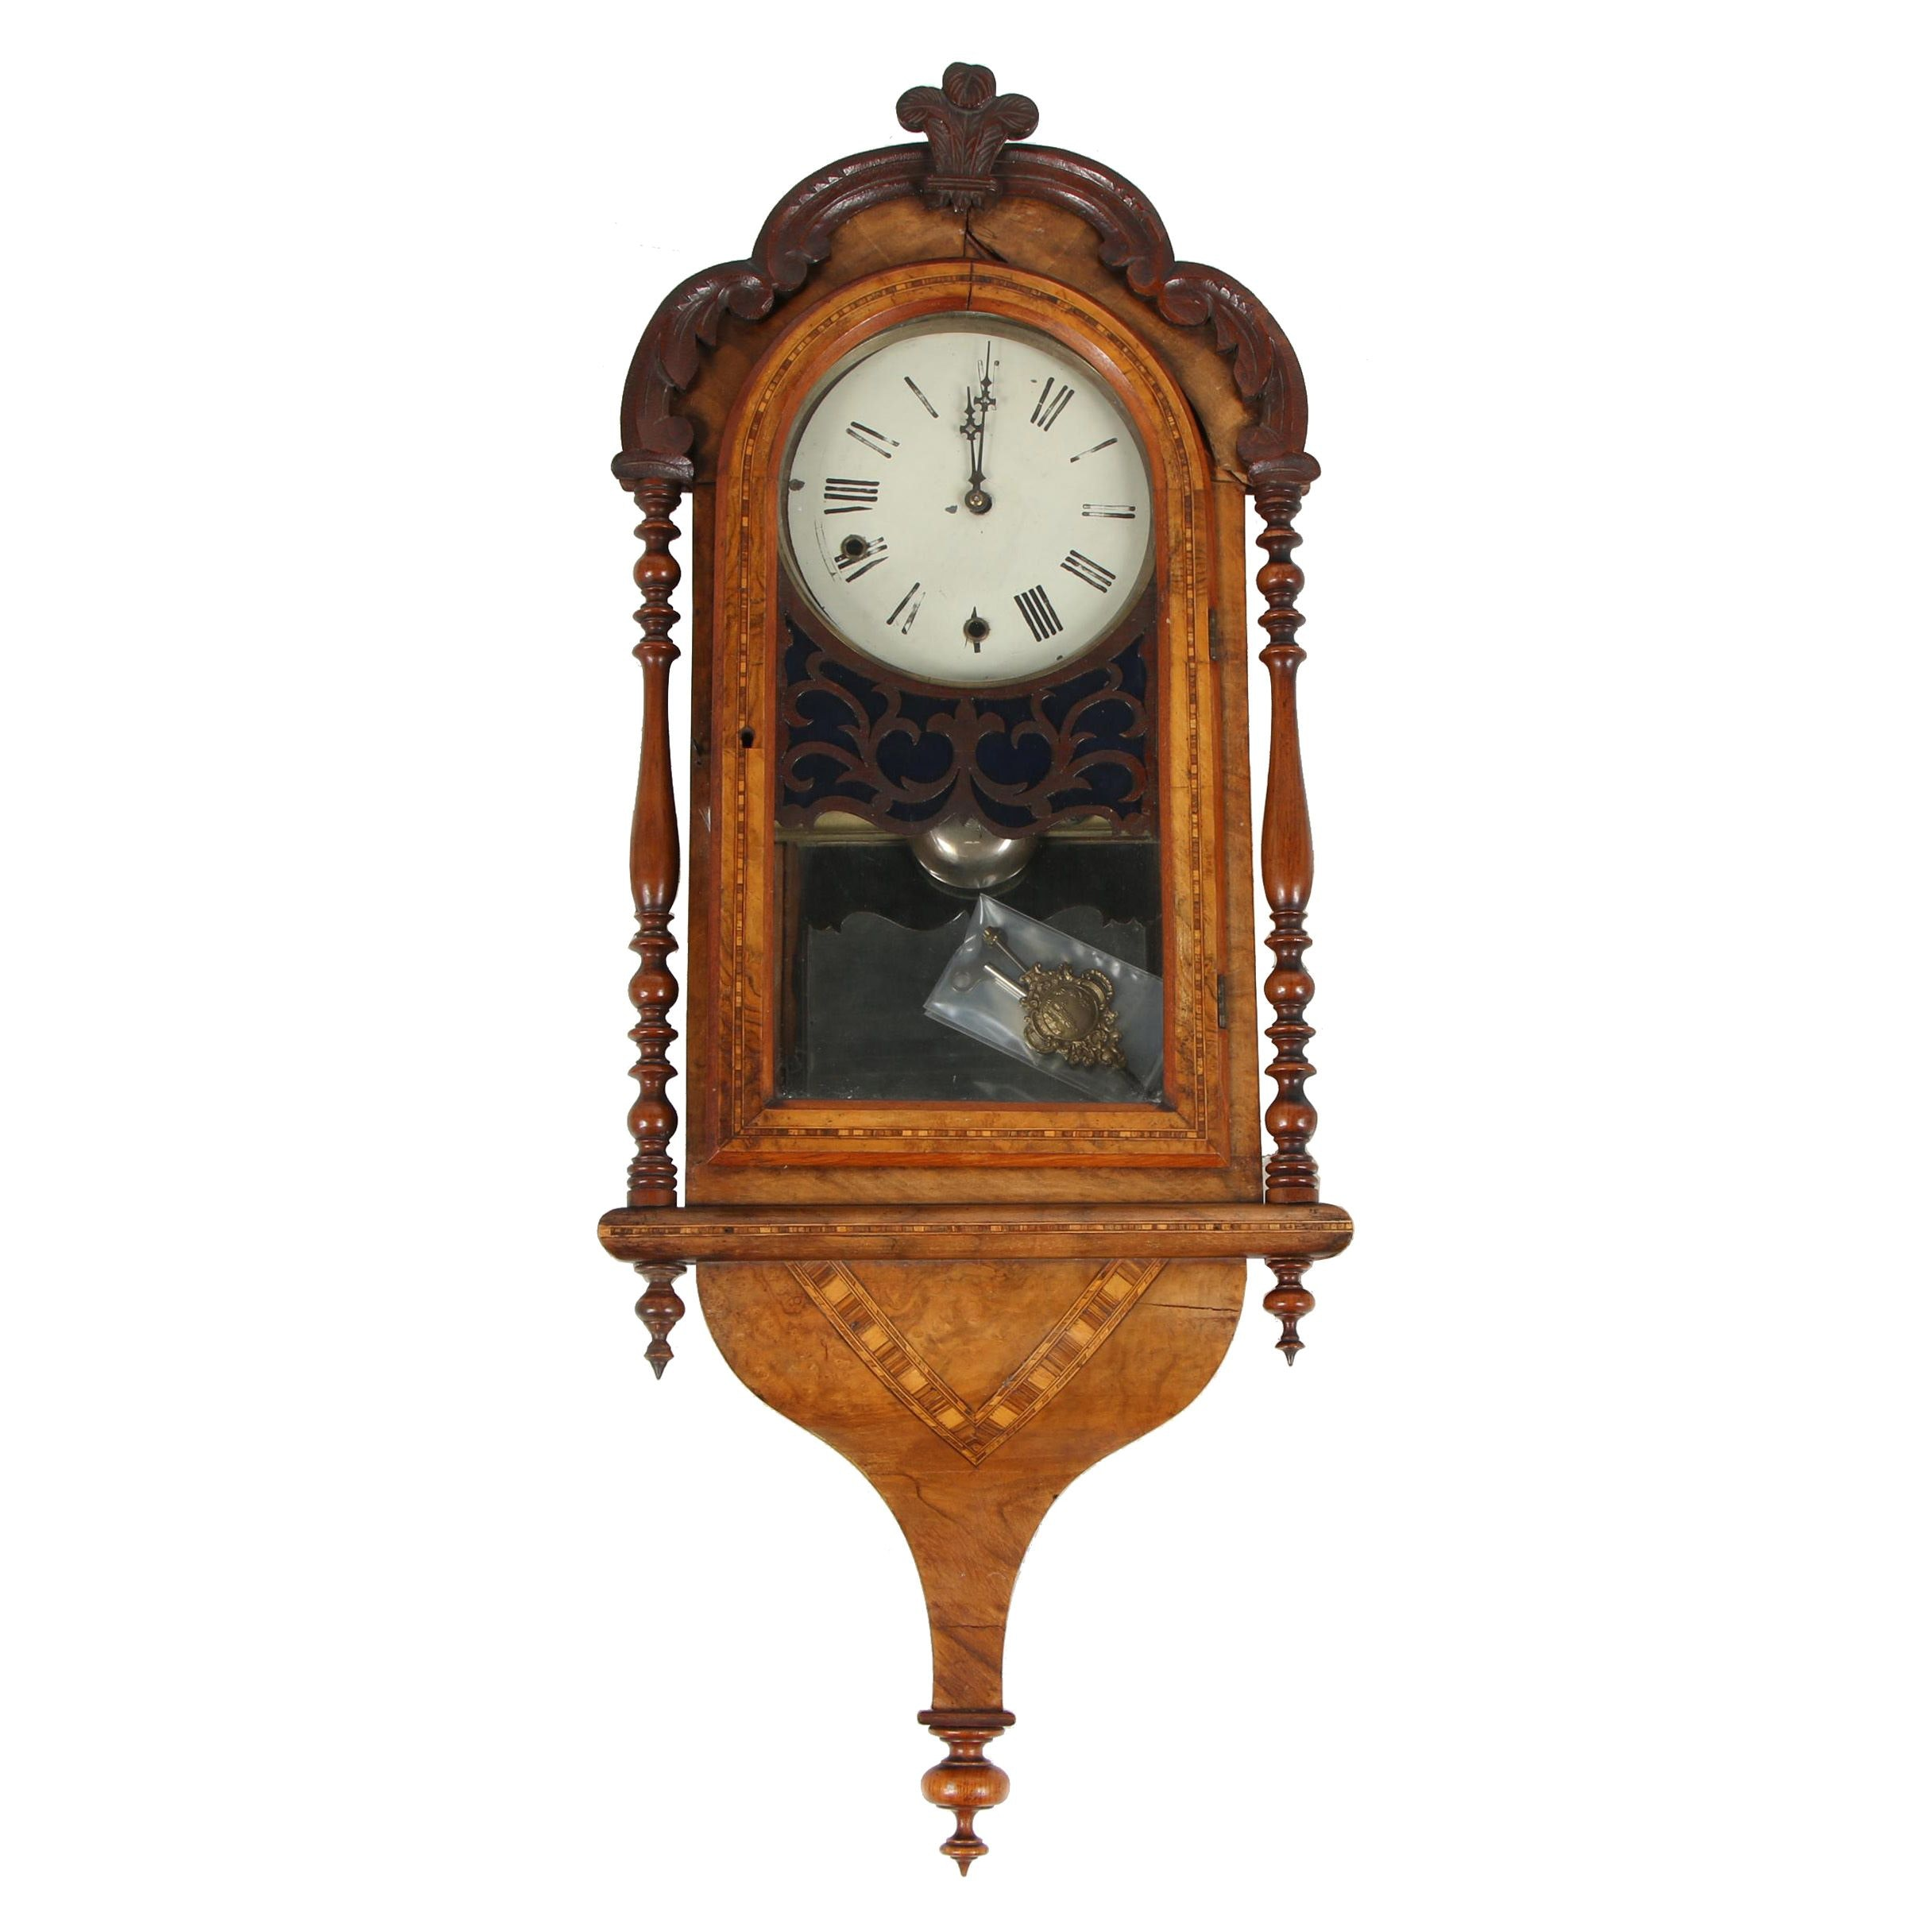 German Style Carved Walnut and Parquetry Inlay Wall Clock, 20th Century